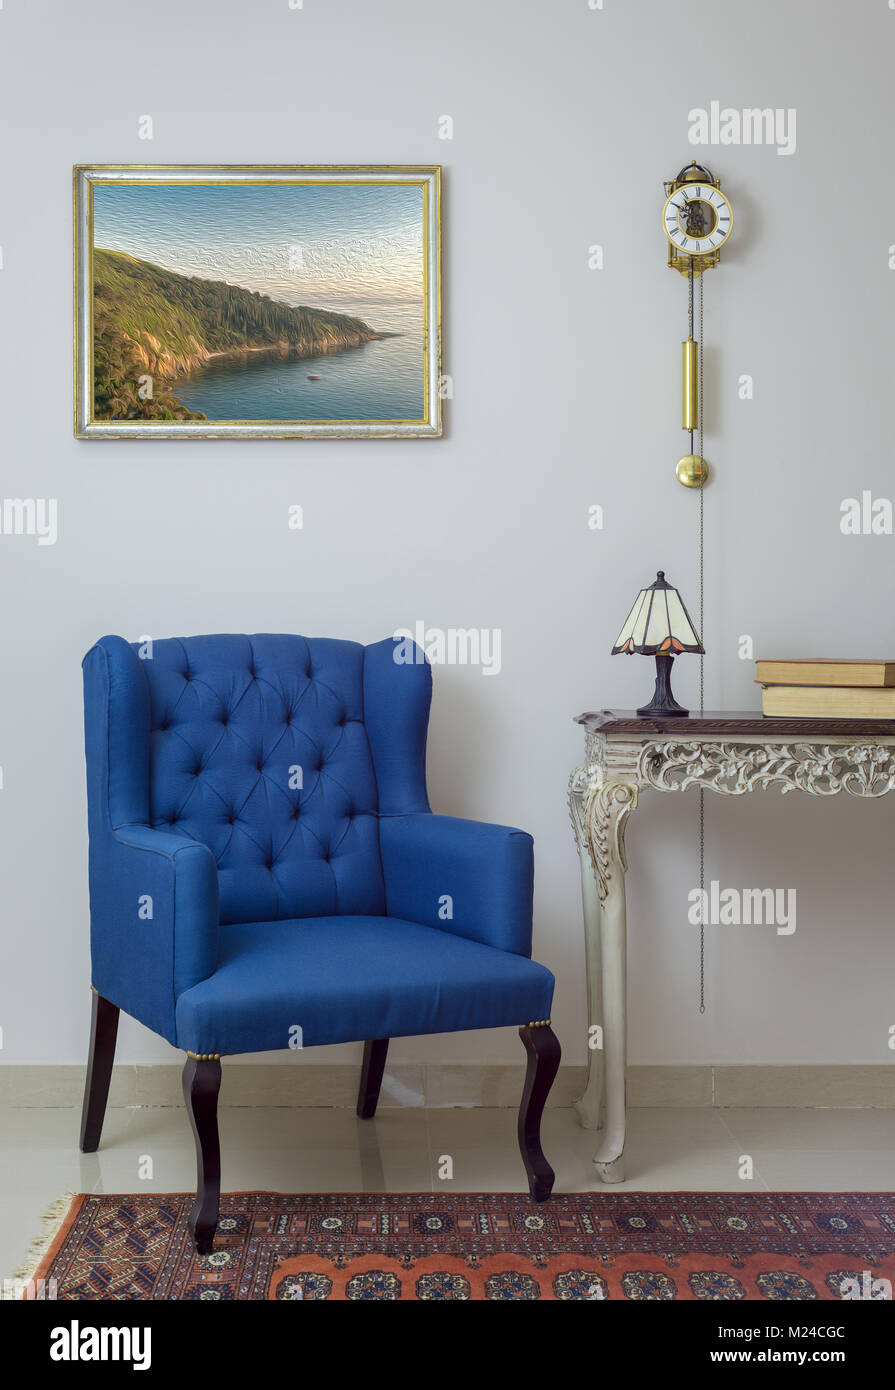 Vintage Furniture - Interior composition of retro blue armchair, vintage wooden beige table, table lamp, books, - Stock Image